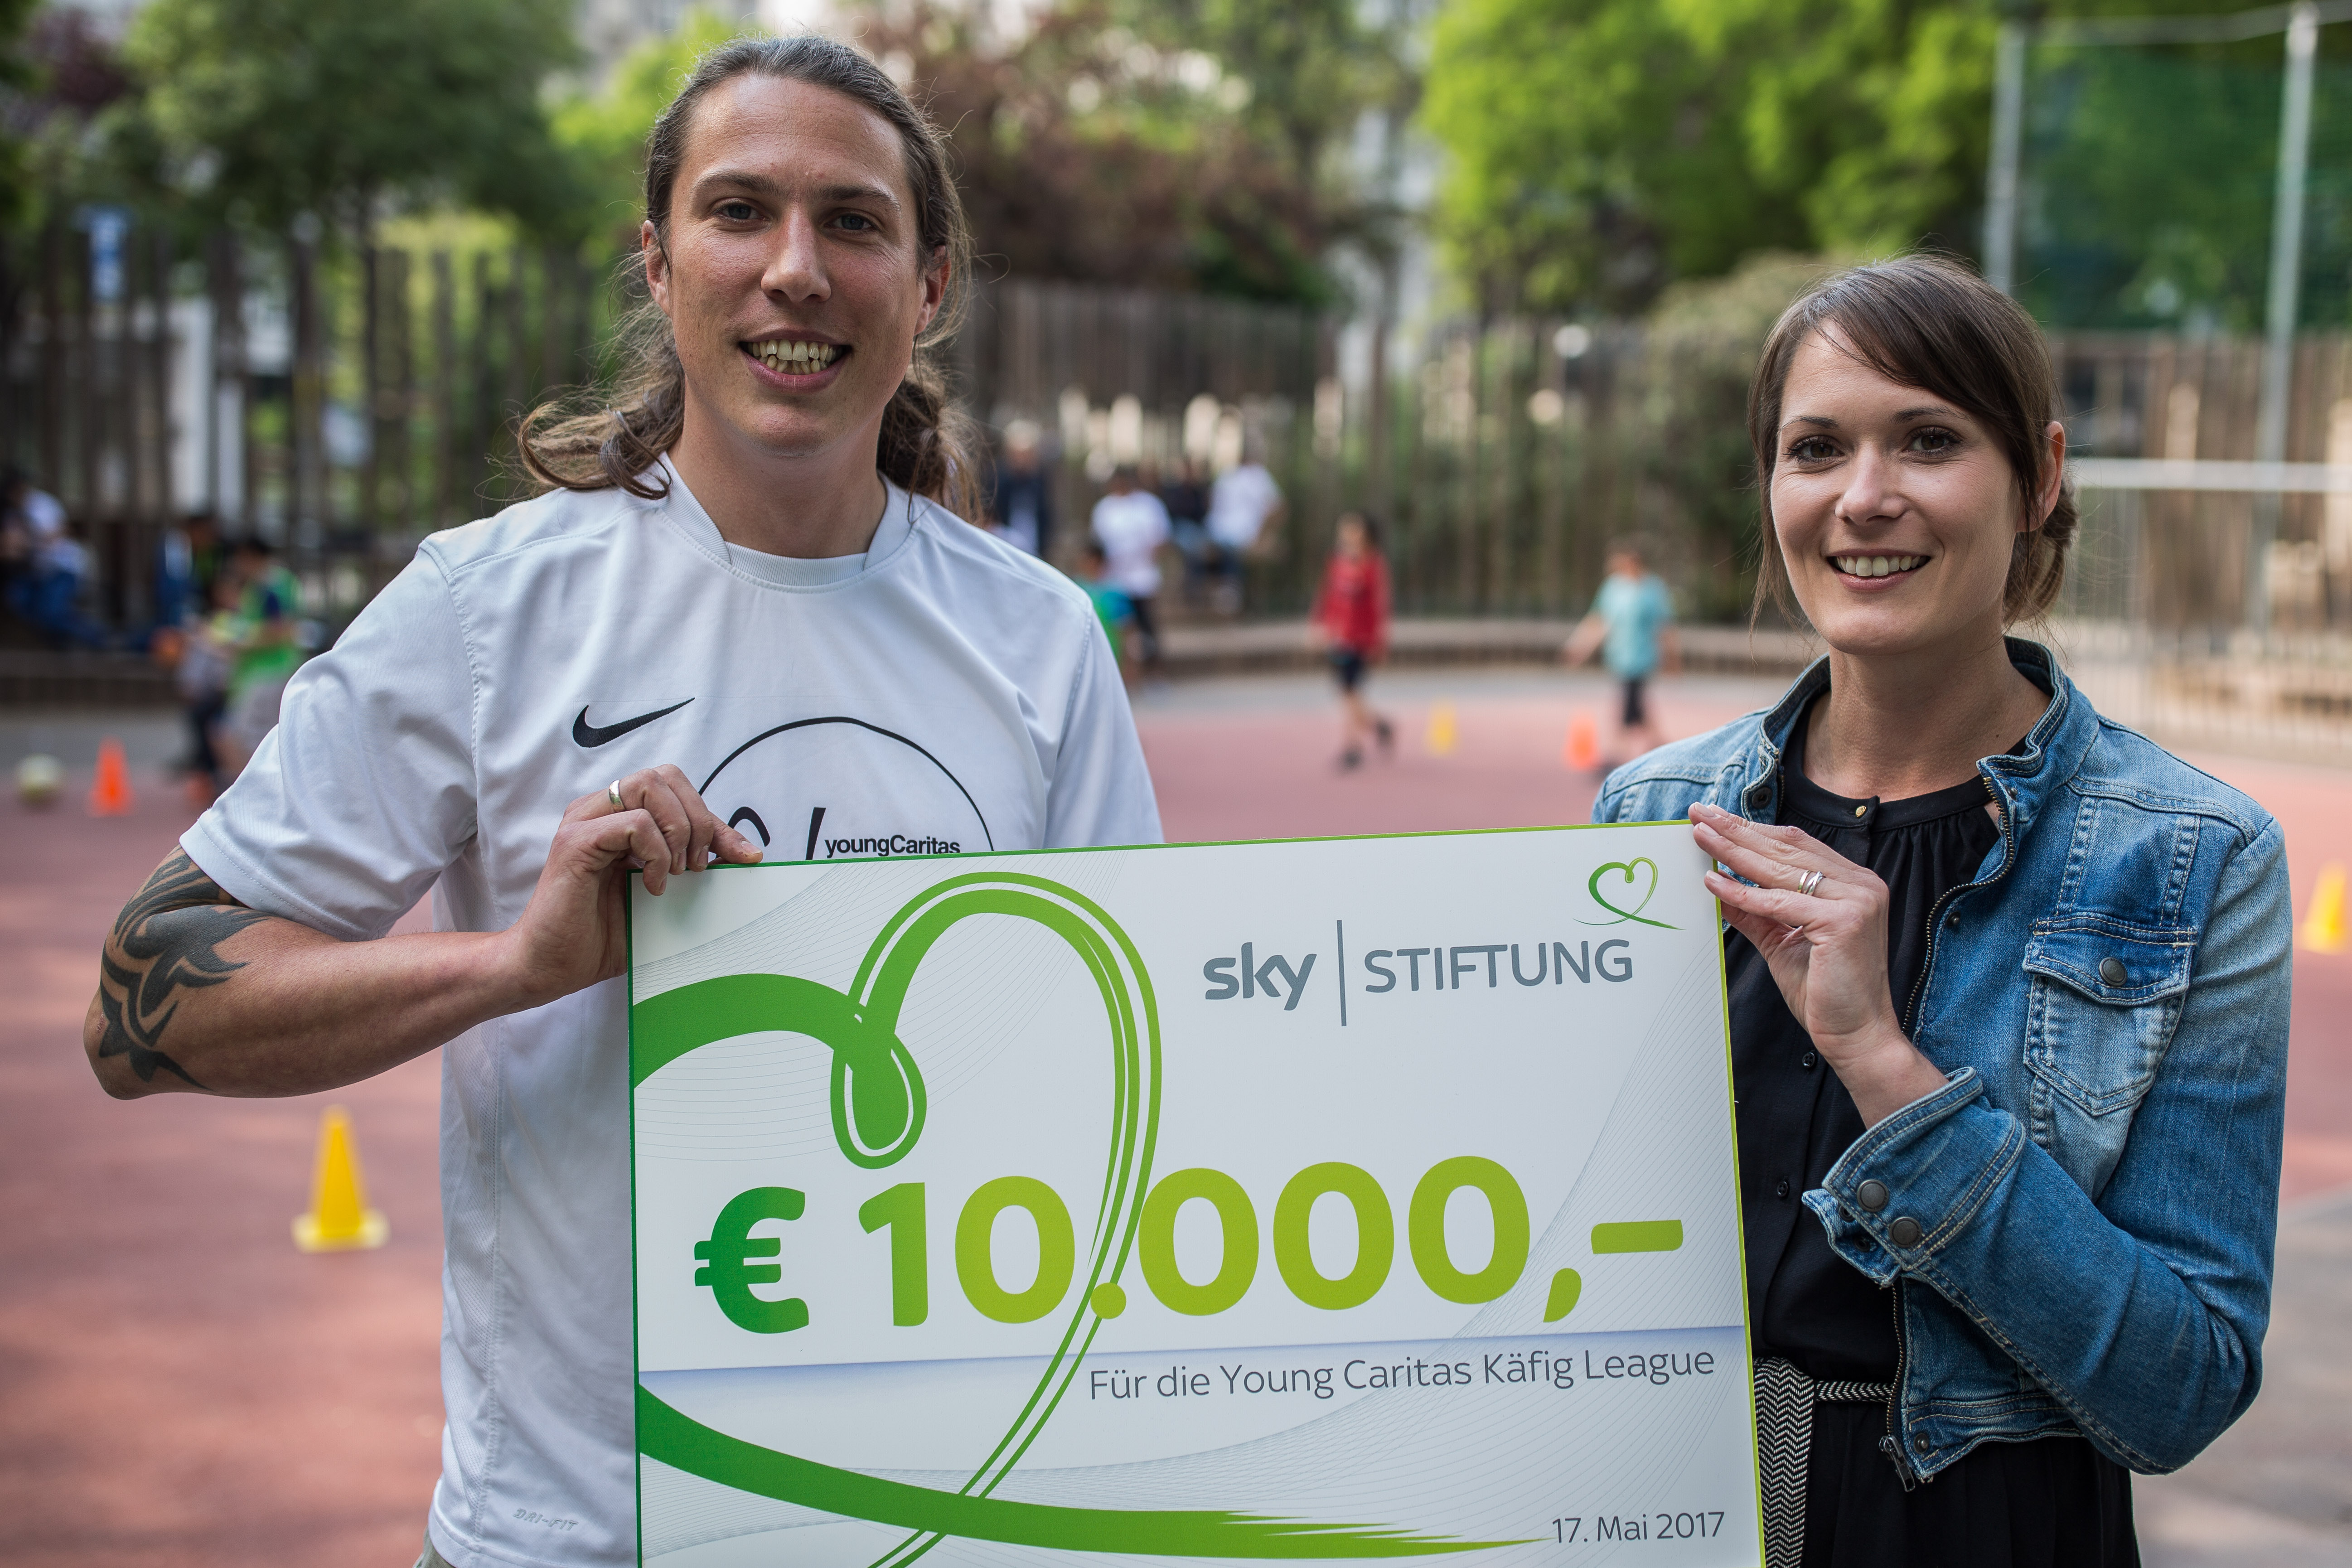 Sky Stiftung